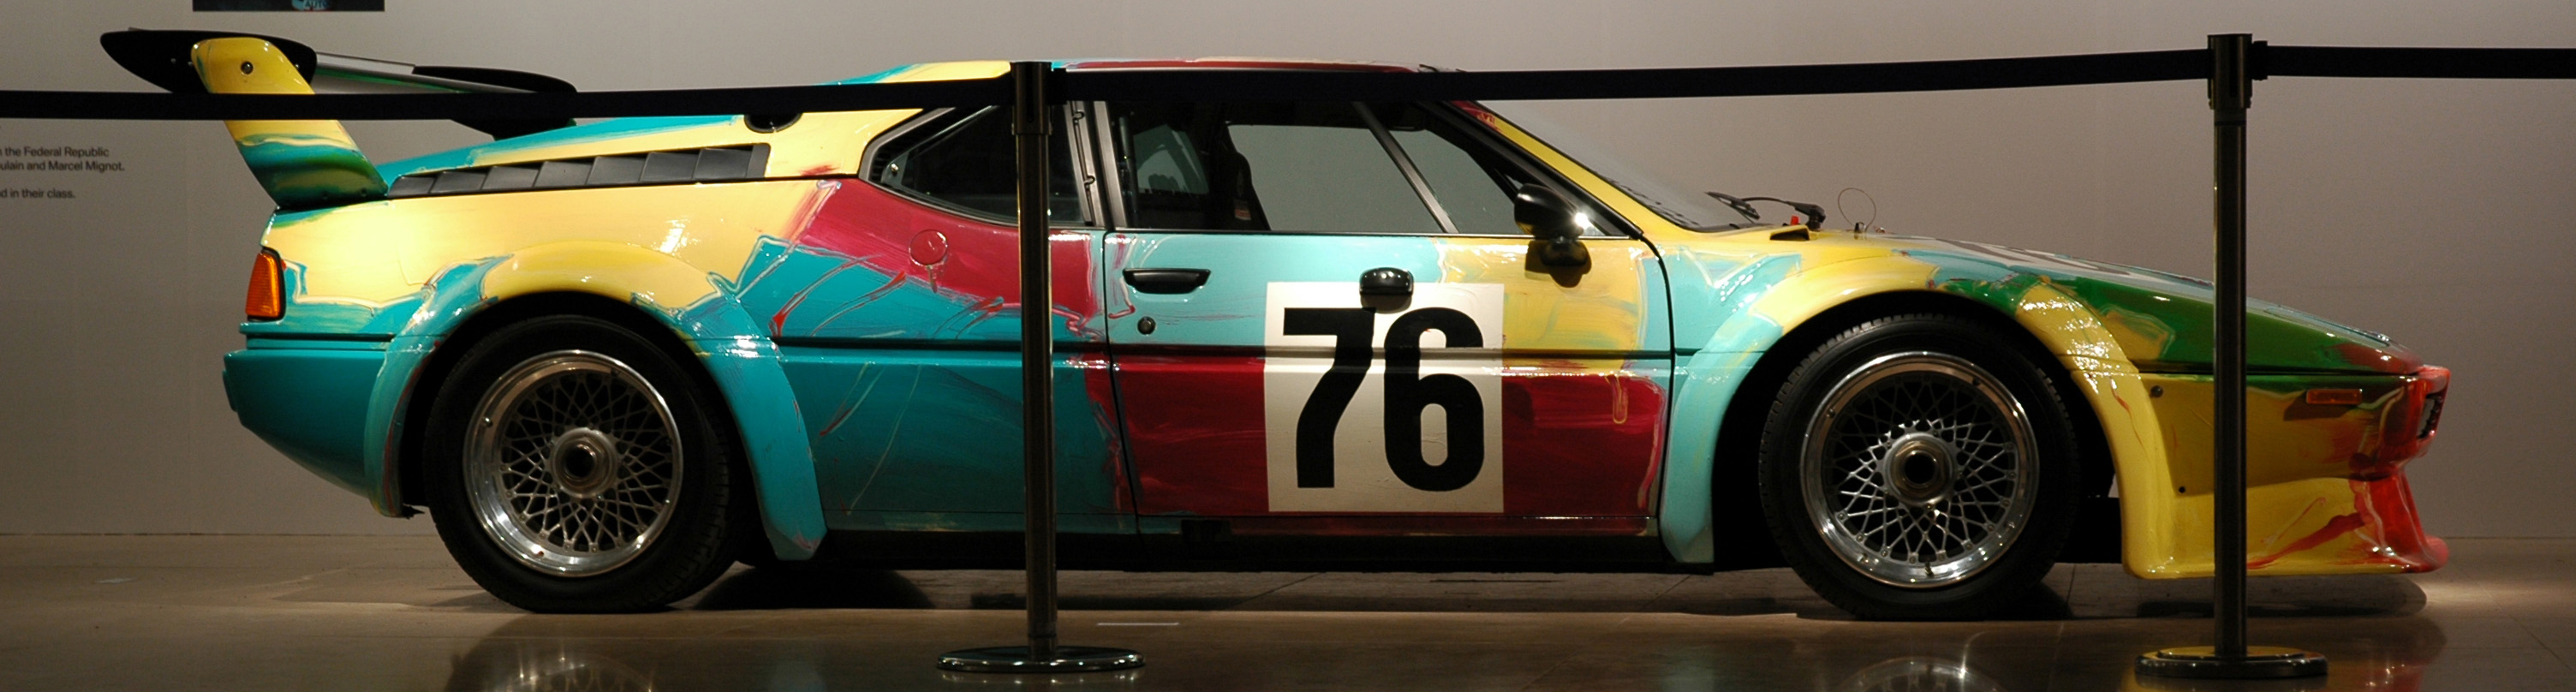 BMW M1 Art Car - Copyright Nik Azwaa Azmi